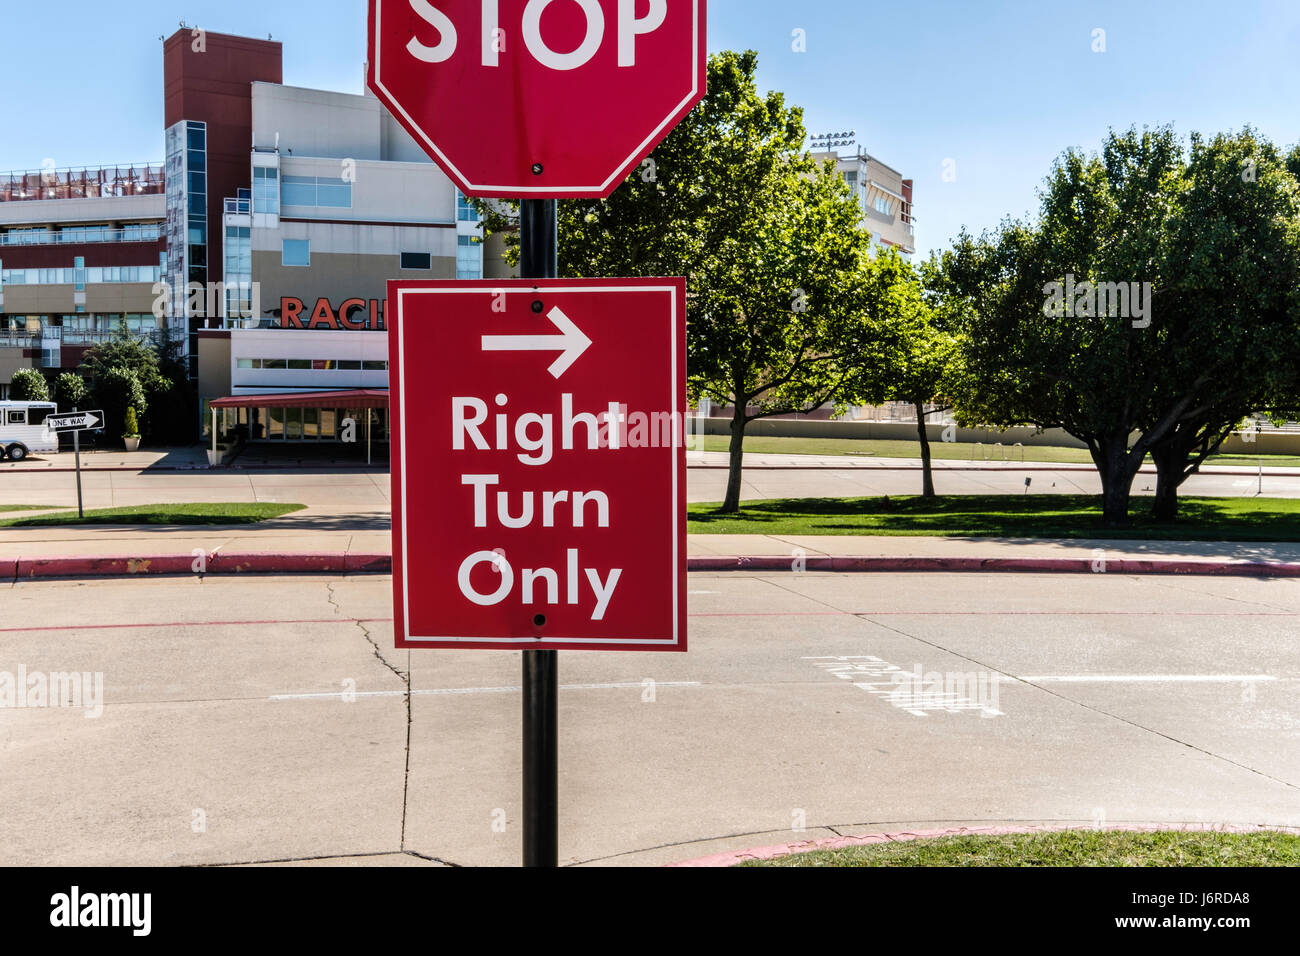 A stop sign and Right Turn Only sign in front of Remington Park, a horse racing track. Oklahoma City, Oklahoma, - Stock Image